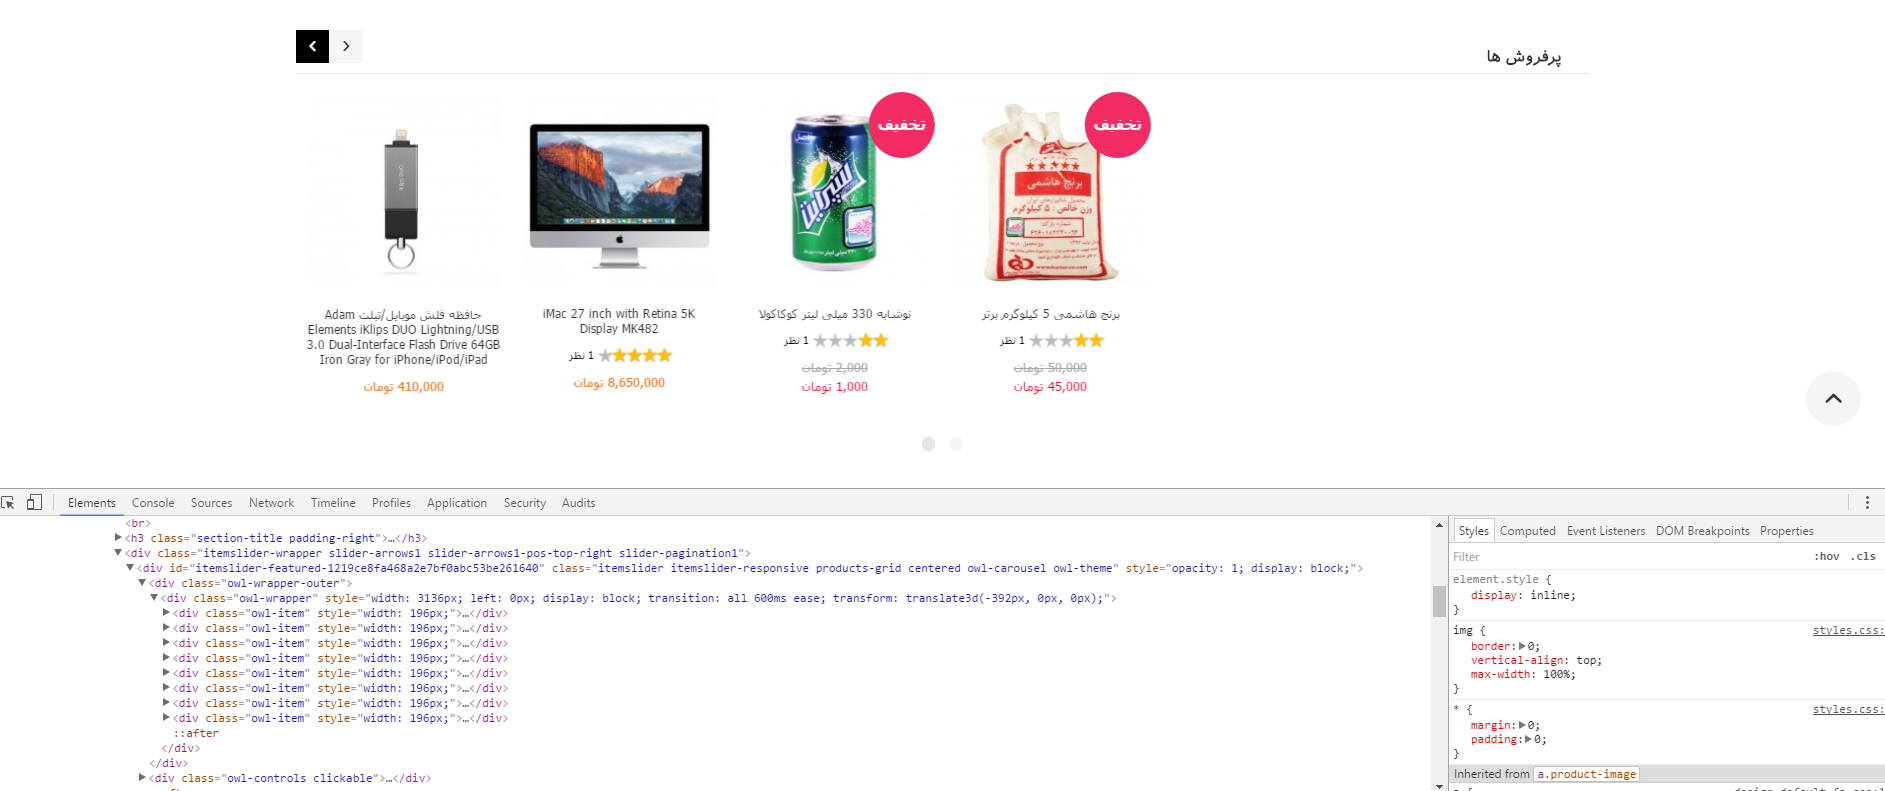 Cannot RTL owl carousel in Magento 1 Ultimo theme - jQuery Forum